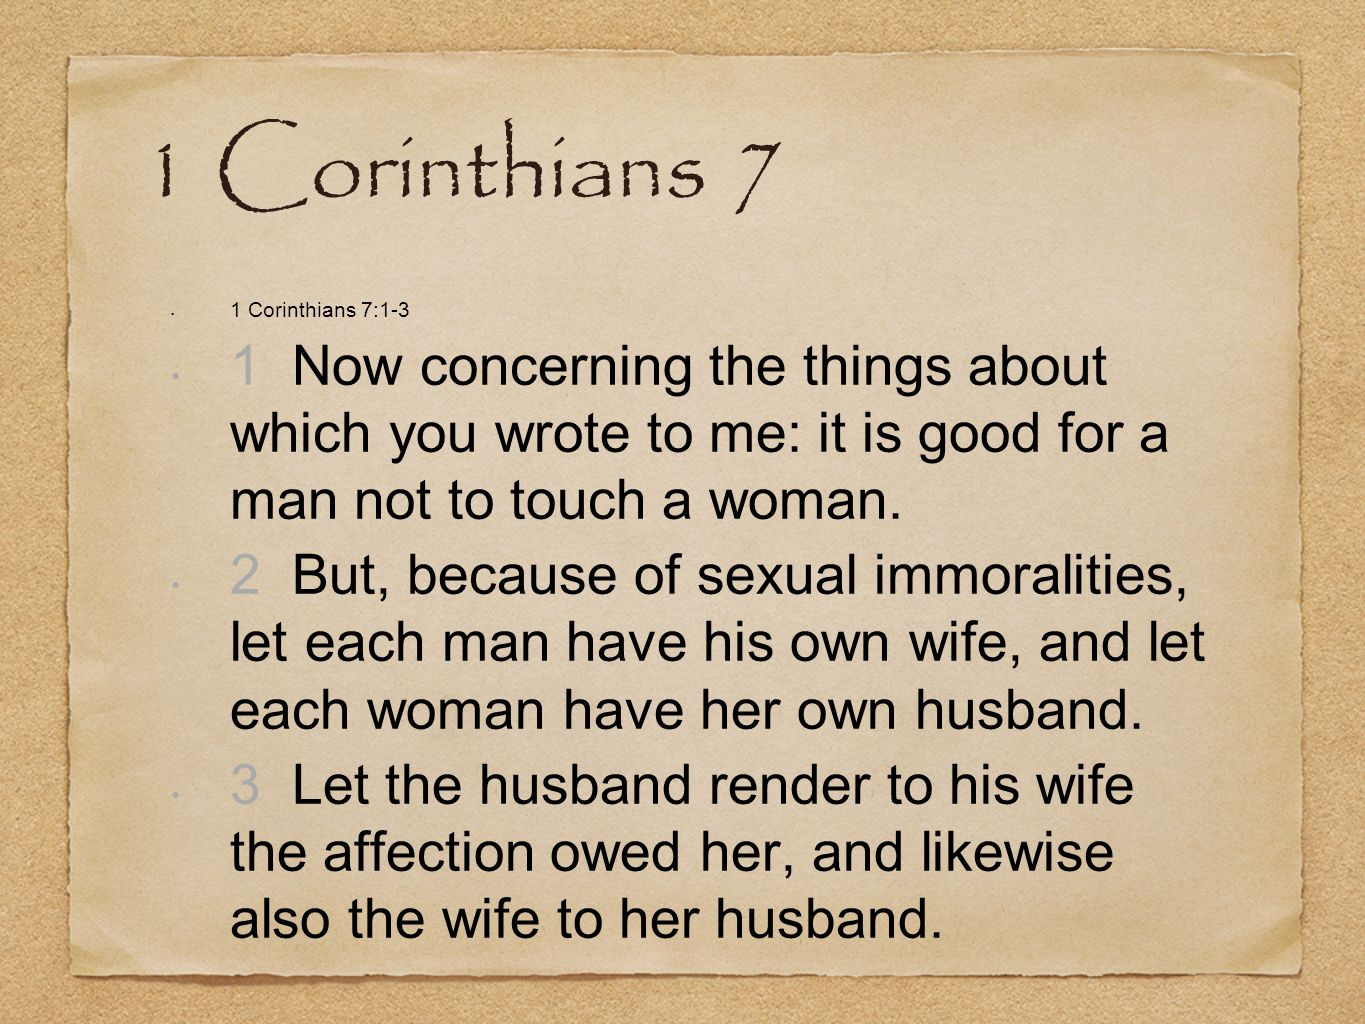 1 Corinthians 7 1 Corinthians 7:1-3. 1 Now concerning the things about which you wrote to me: it is good for a man not to touch a woman.